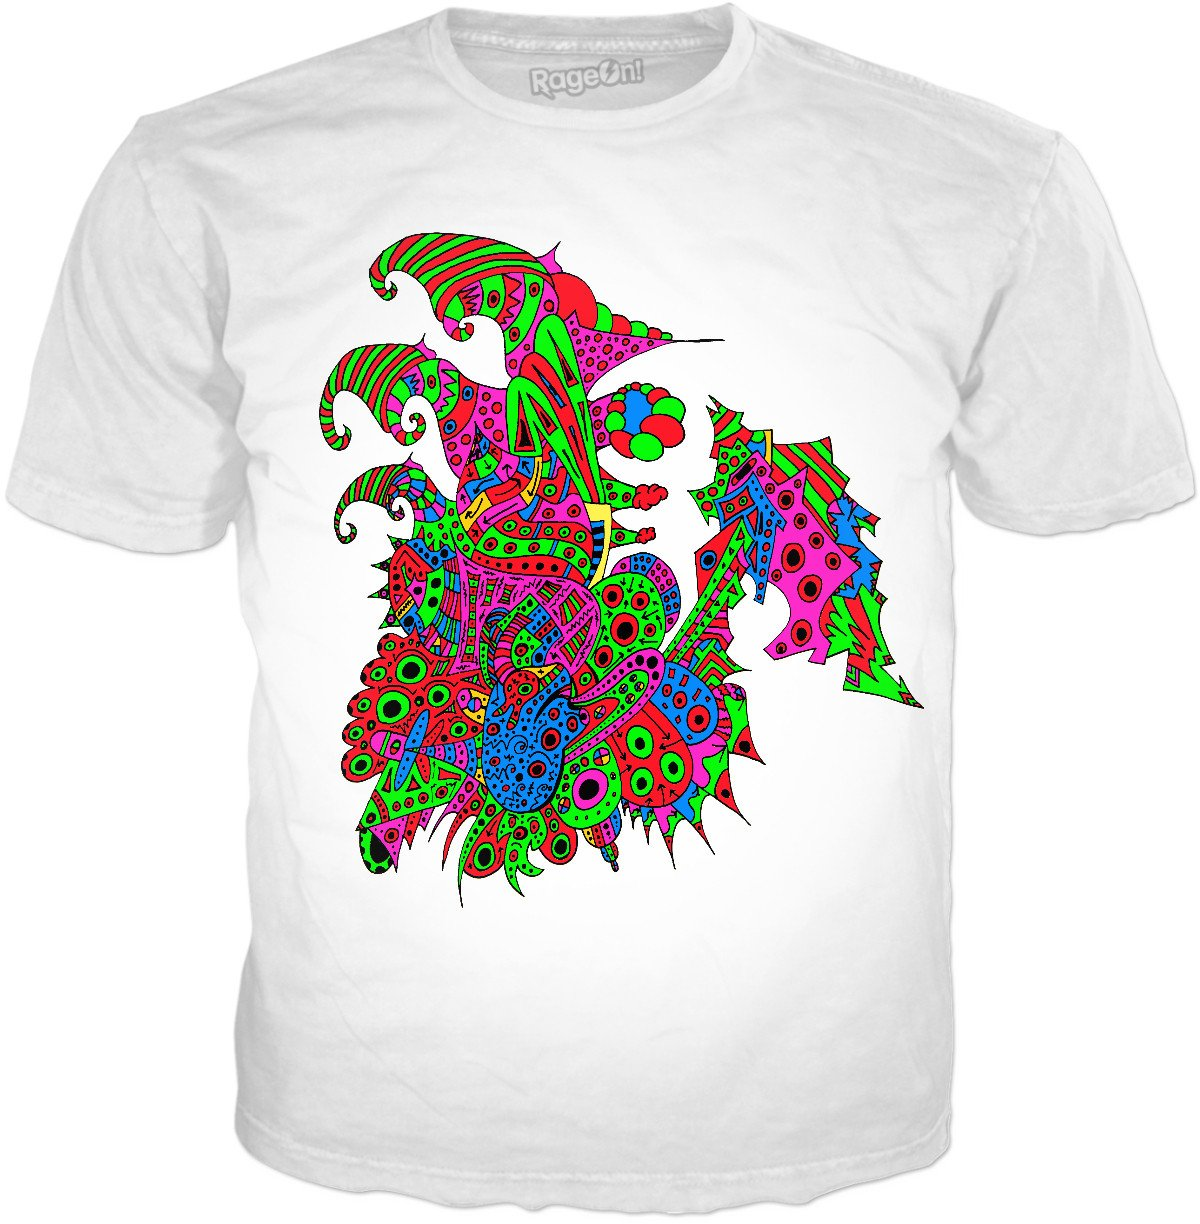 Alien 57 Blue Red Green Pink Blue & Orange T-Shirt - TShirtsRUS.co